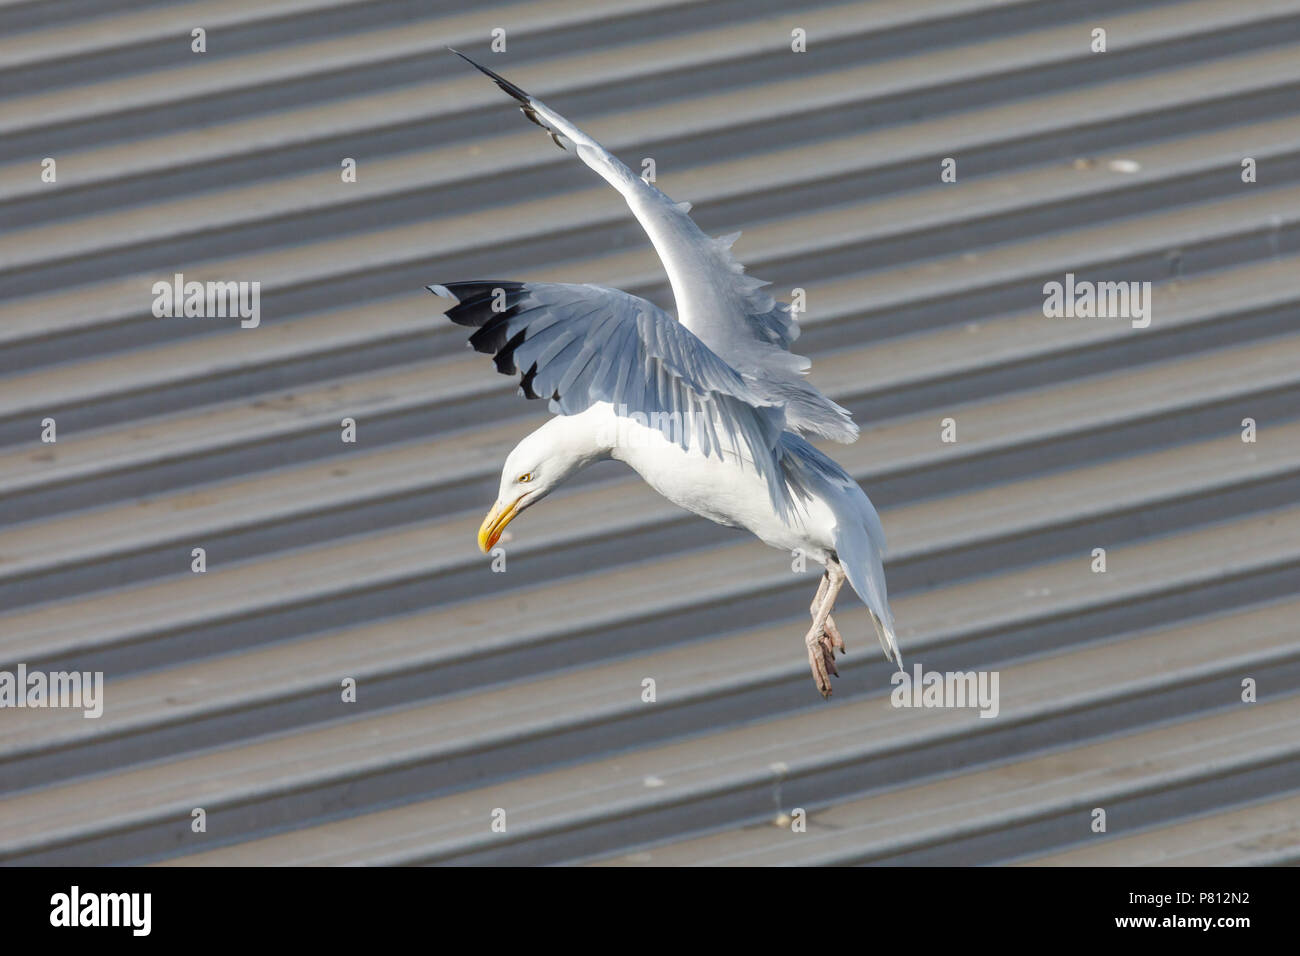 A Common Gull (Seagull) lands on the metal roof of an urban supermarket - Stock Image